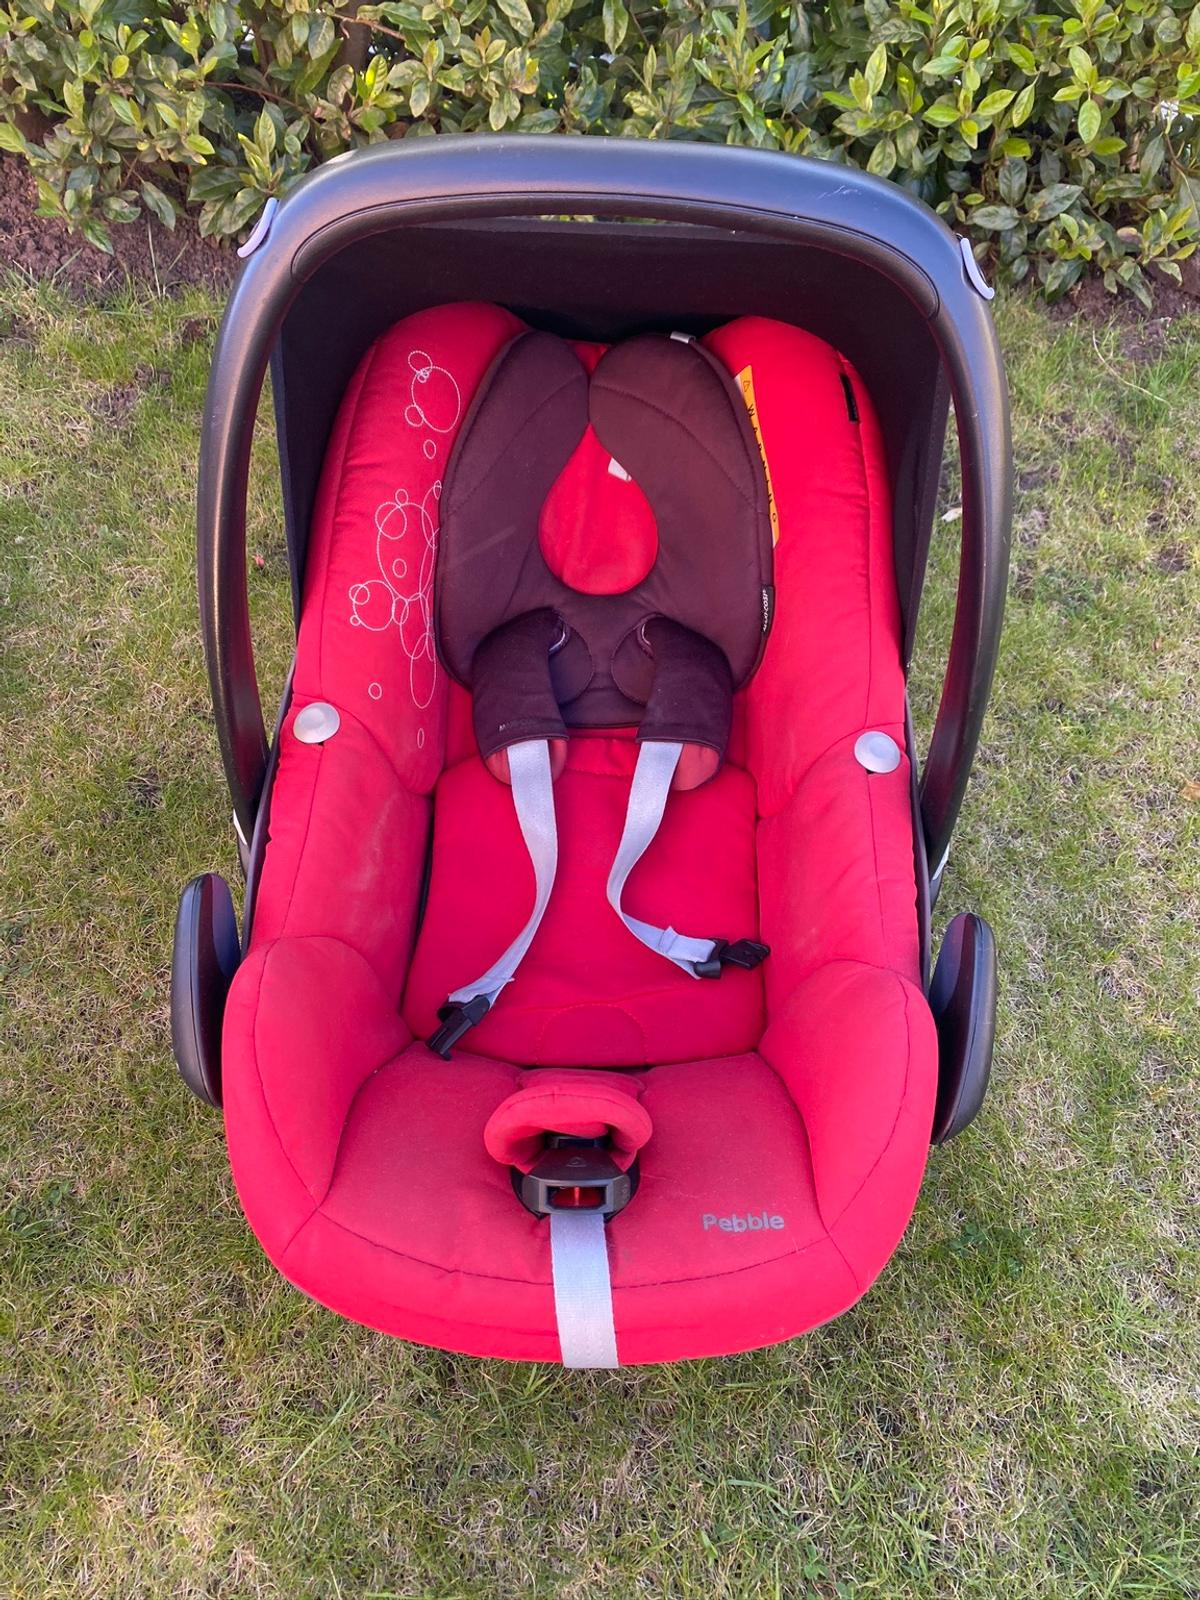 Red Maxi Cosi Car seat. Used but in excellent condition. Comes with footmuff and rain over